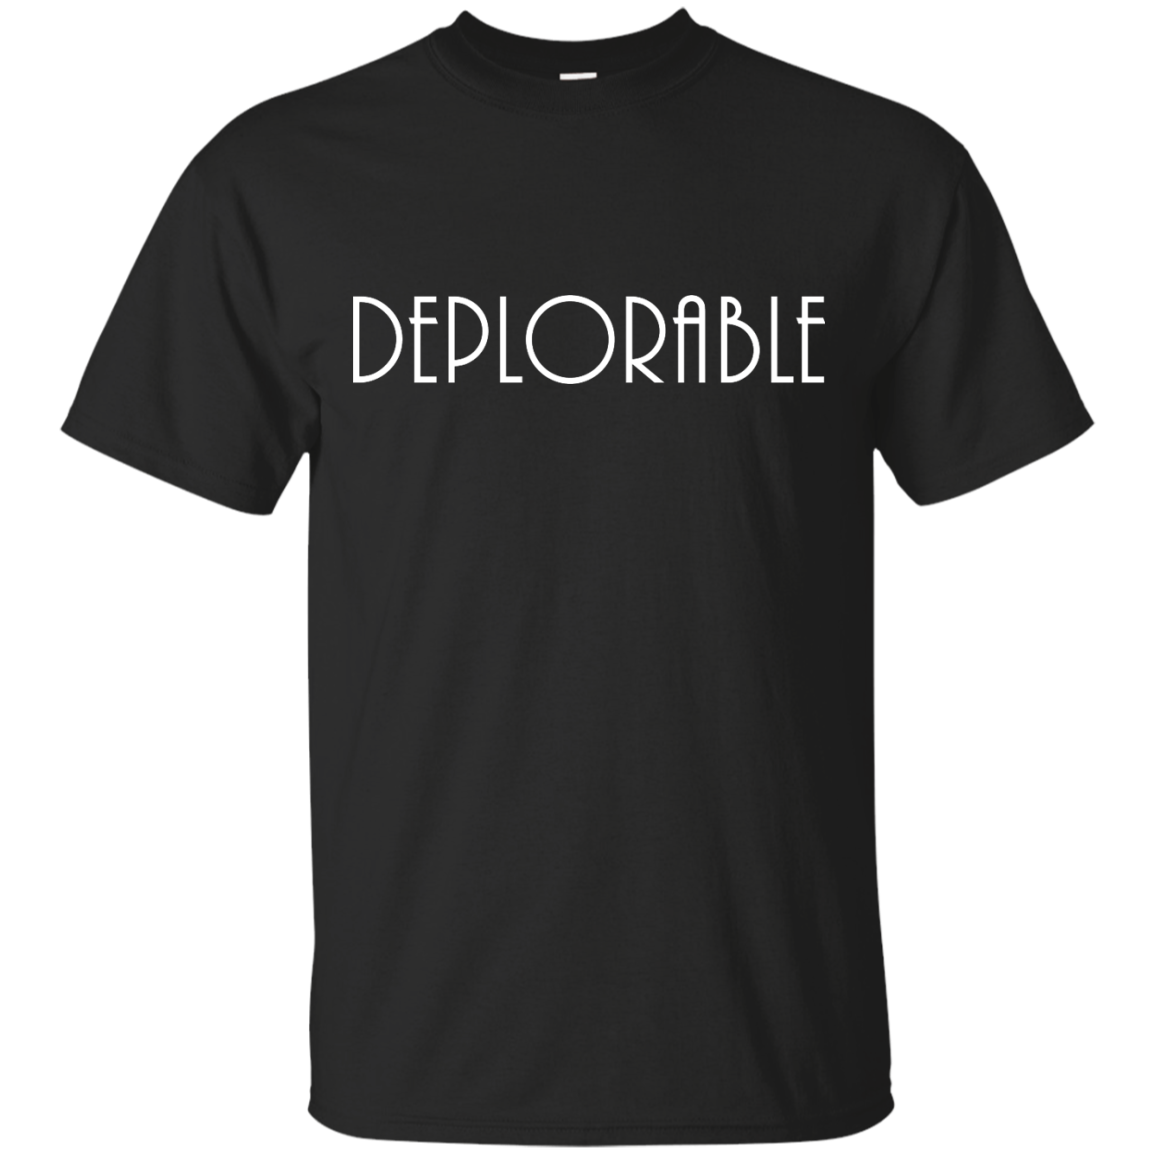 Deplorable T shirt, Tank top Vote Trump for president